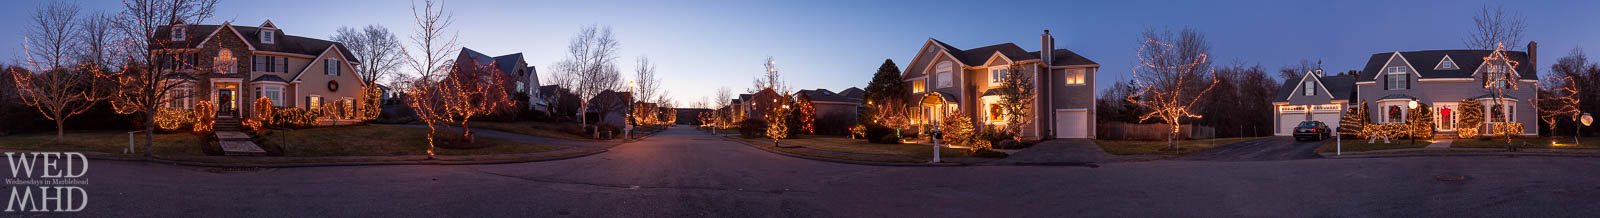 Beautiful holiday lights decorate the houses along Riverside Drive in Marblehead